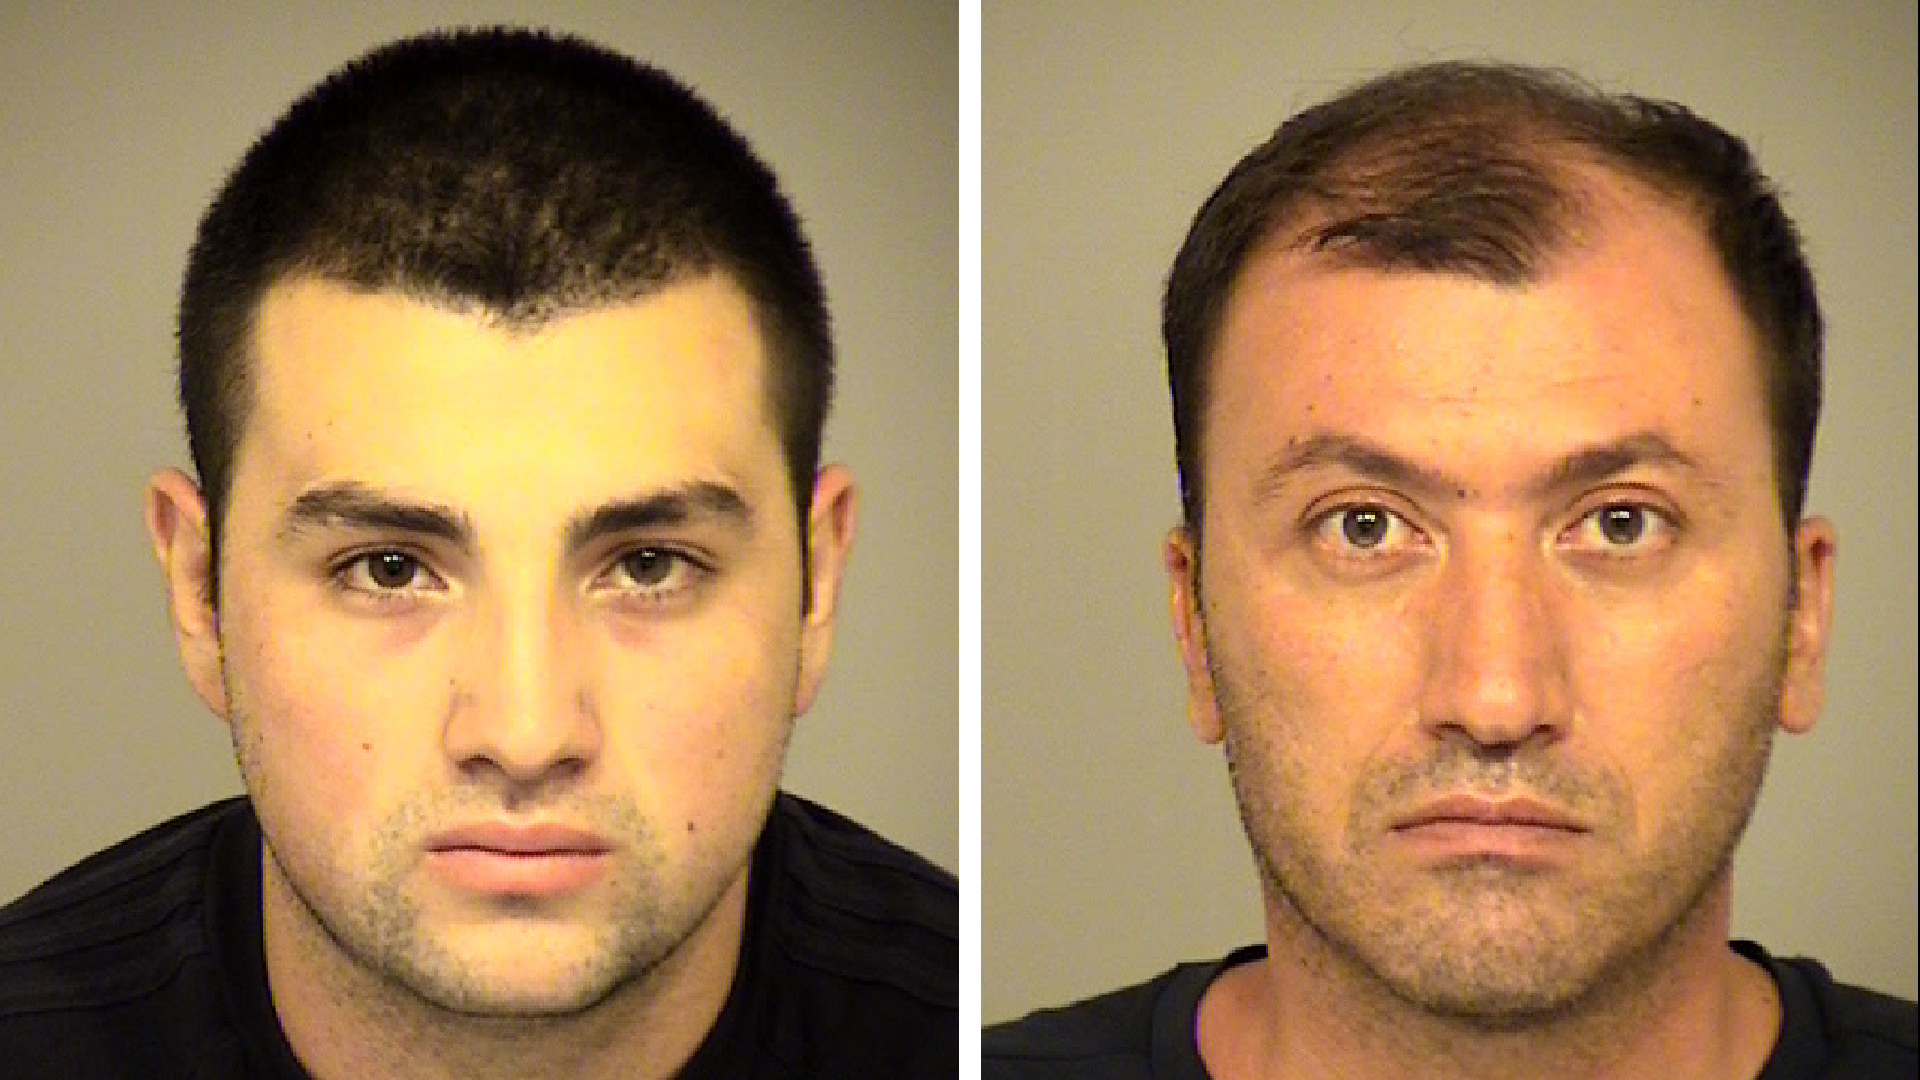 Karapet Gasparyan, 39, and Grigor Gasparyan, 18, are seen in undated booking photos provided by the Ventura County Sheriff's Office.